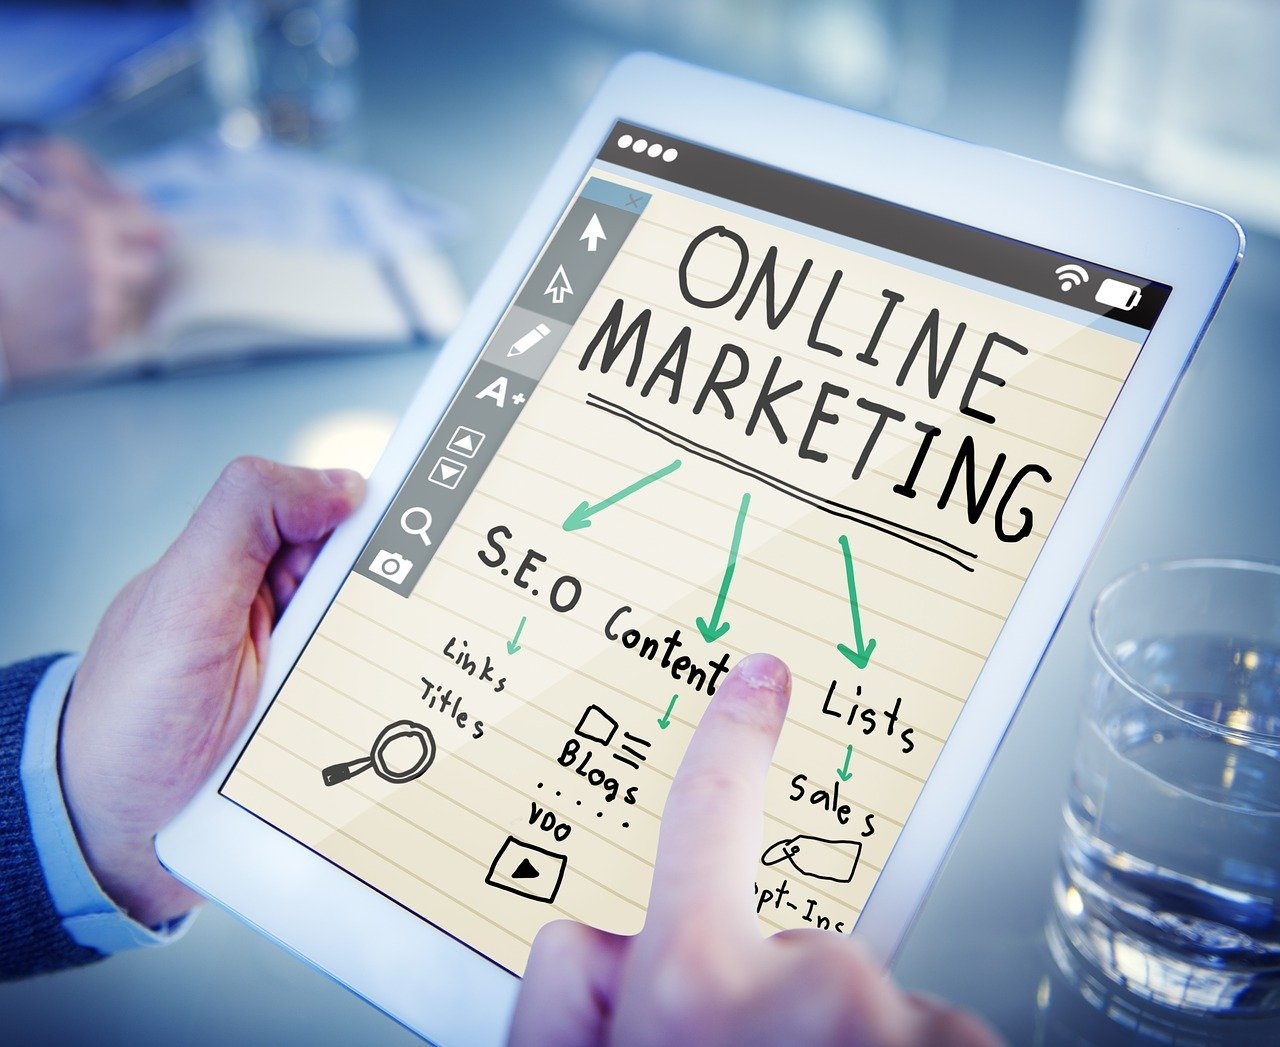 branding-on-the-internet-through-marketing-techniques-to-boost-business-success